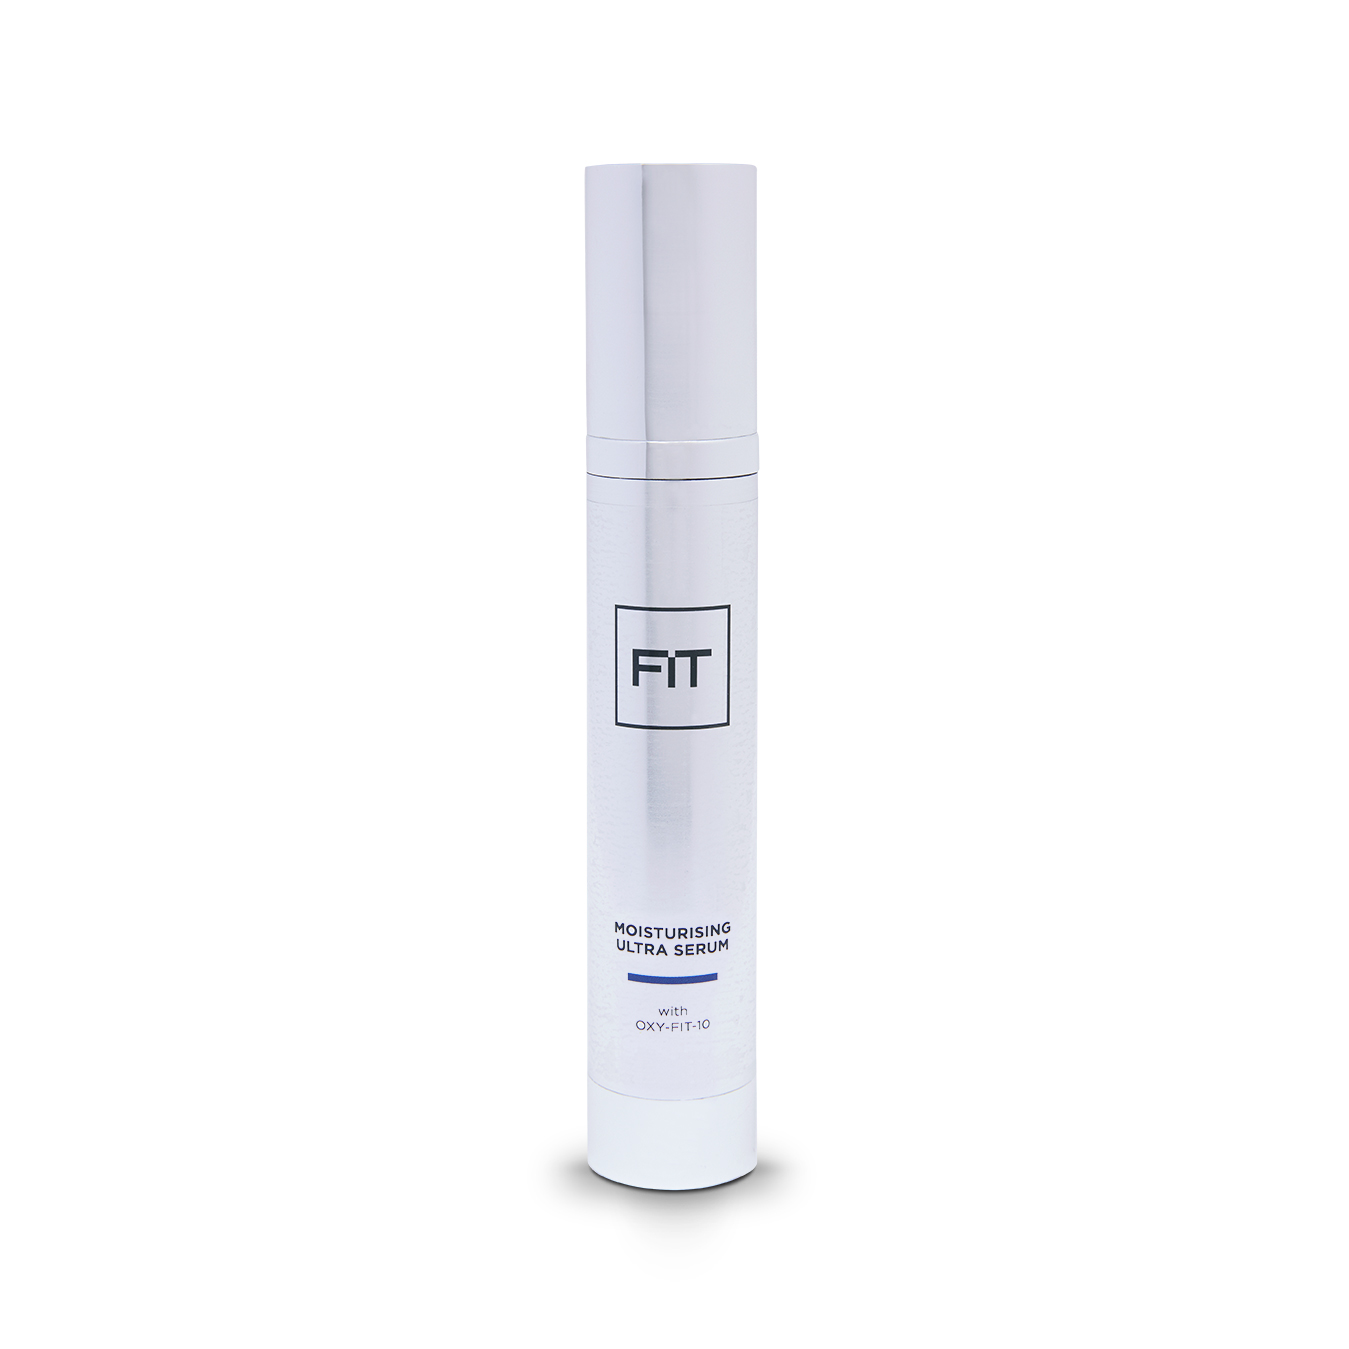 fit_30ml_moisturiser_bottle_white_square_72dpi_v1_adj